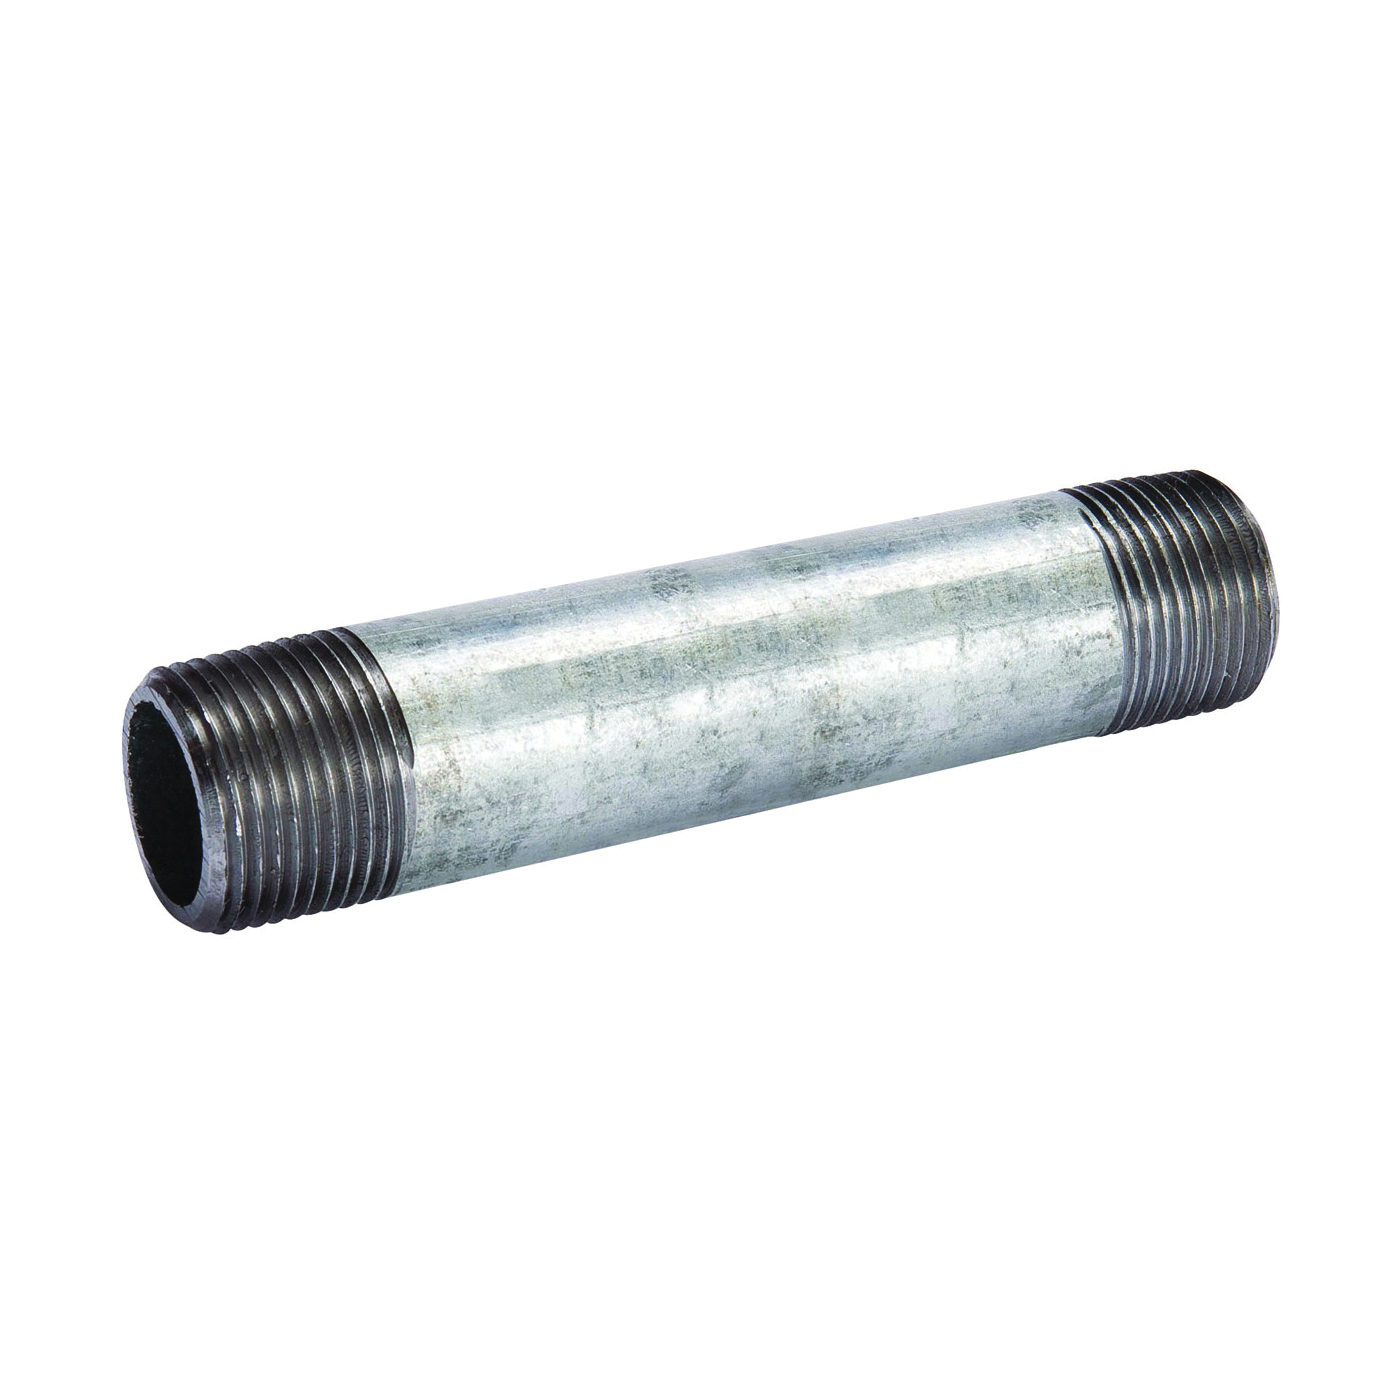 Picture of B & K 570-050BC Pipe Nipple, 3 in, Threaded, Galvanized Steel, SCH 40 Schedule, 5 in L